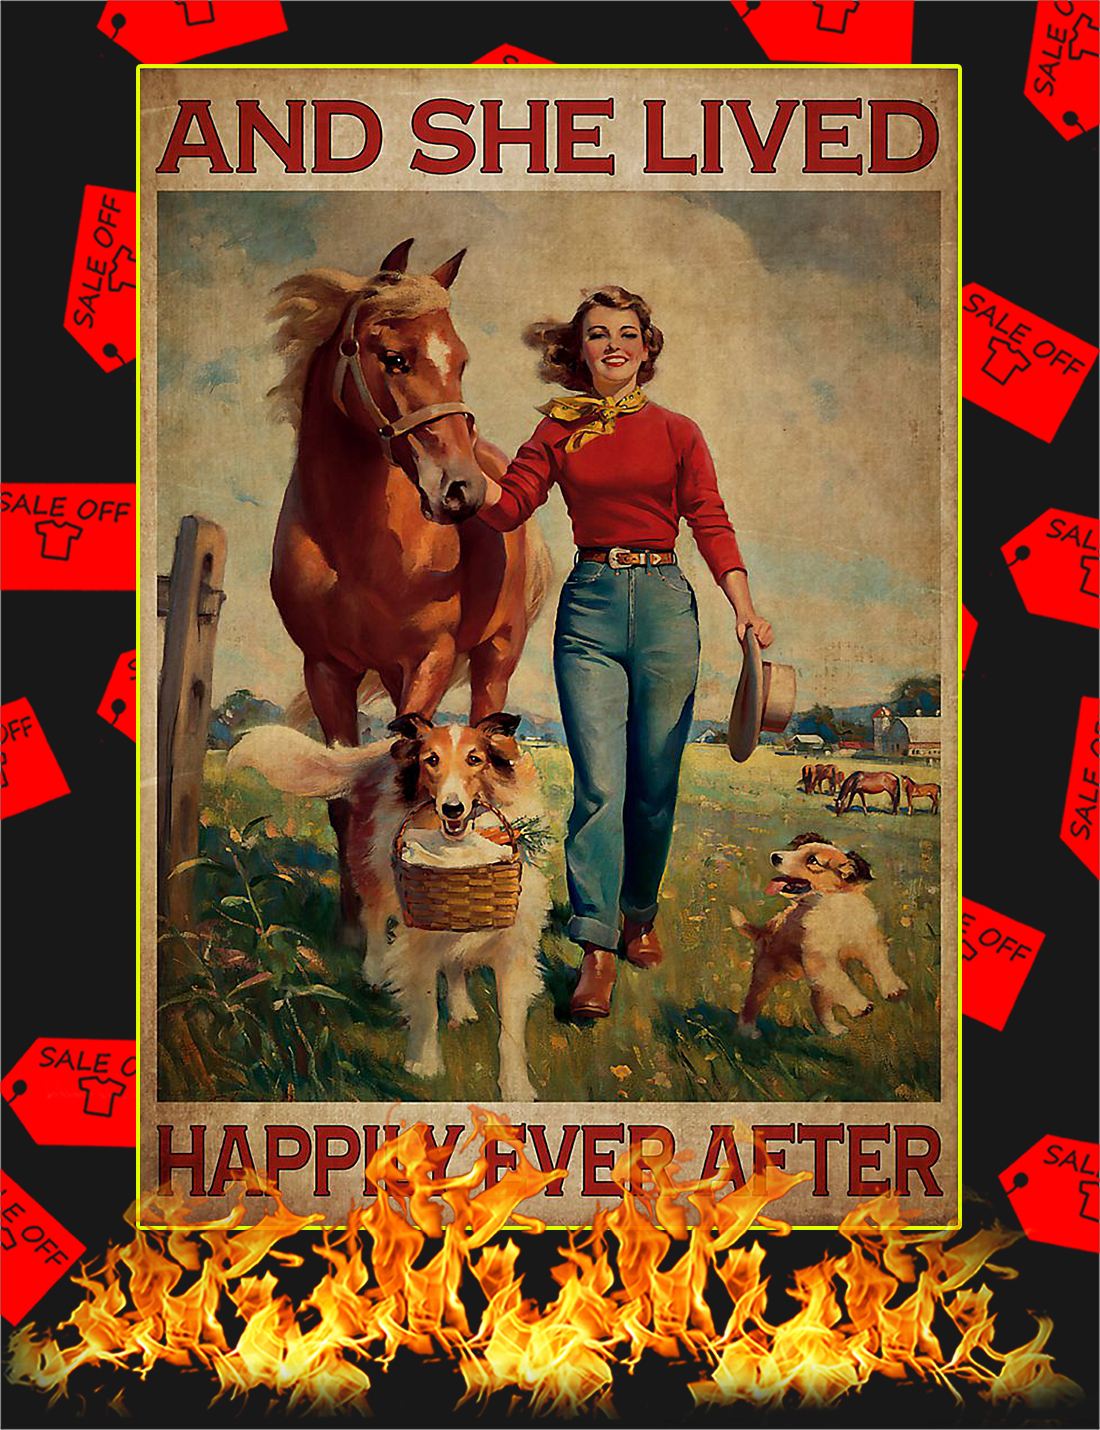 Dogs and horse And she lived happily ever after poster - A4